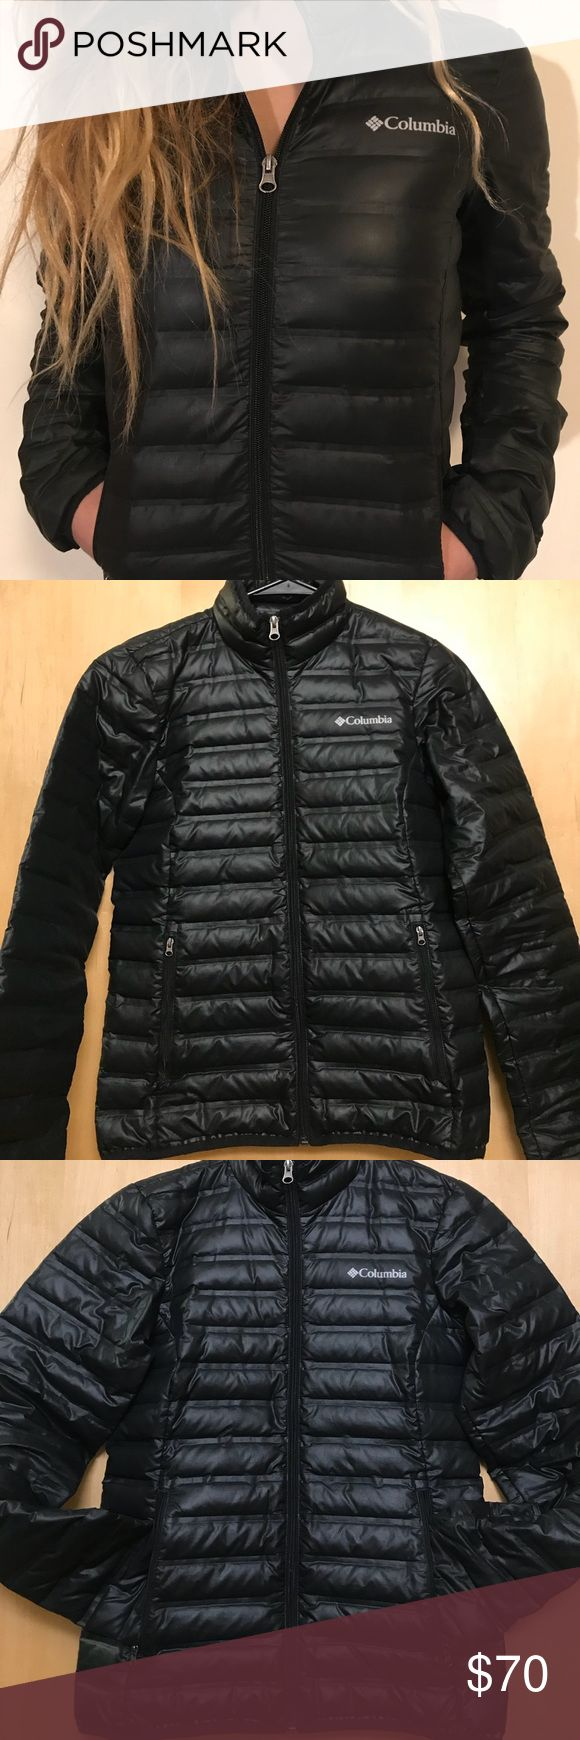 Columbia Women's Flash Forward Down Jacket lightly used great condition  lightweight, great for layering  all zippers intact Columbia Jackets & Coats Puffers